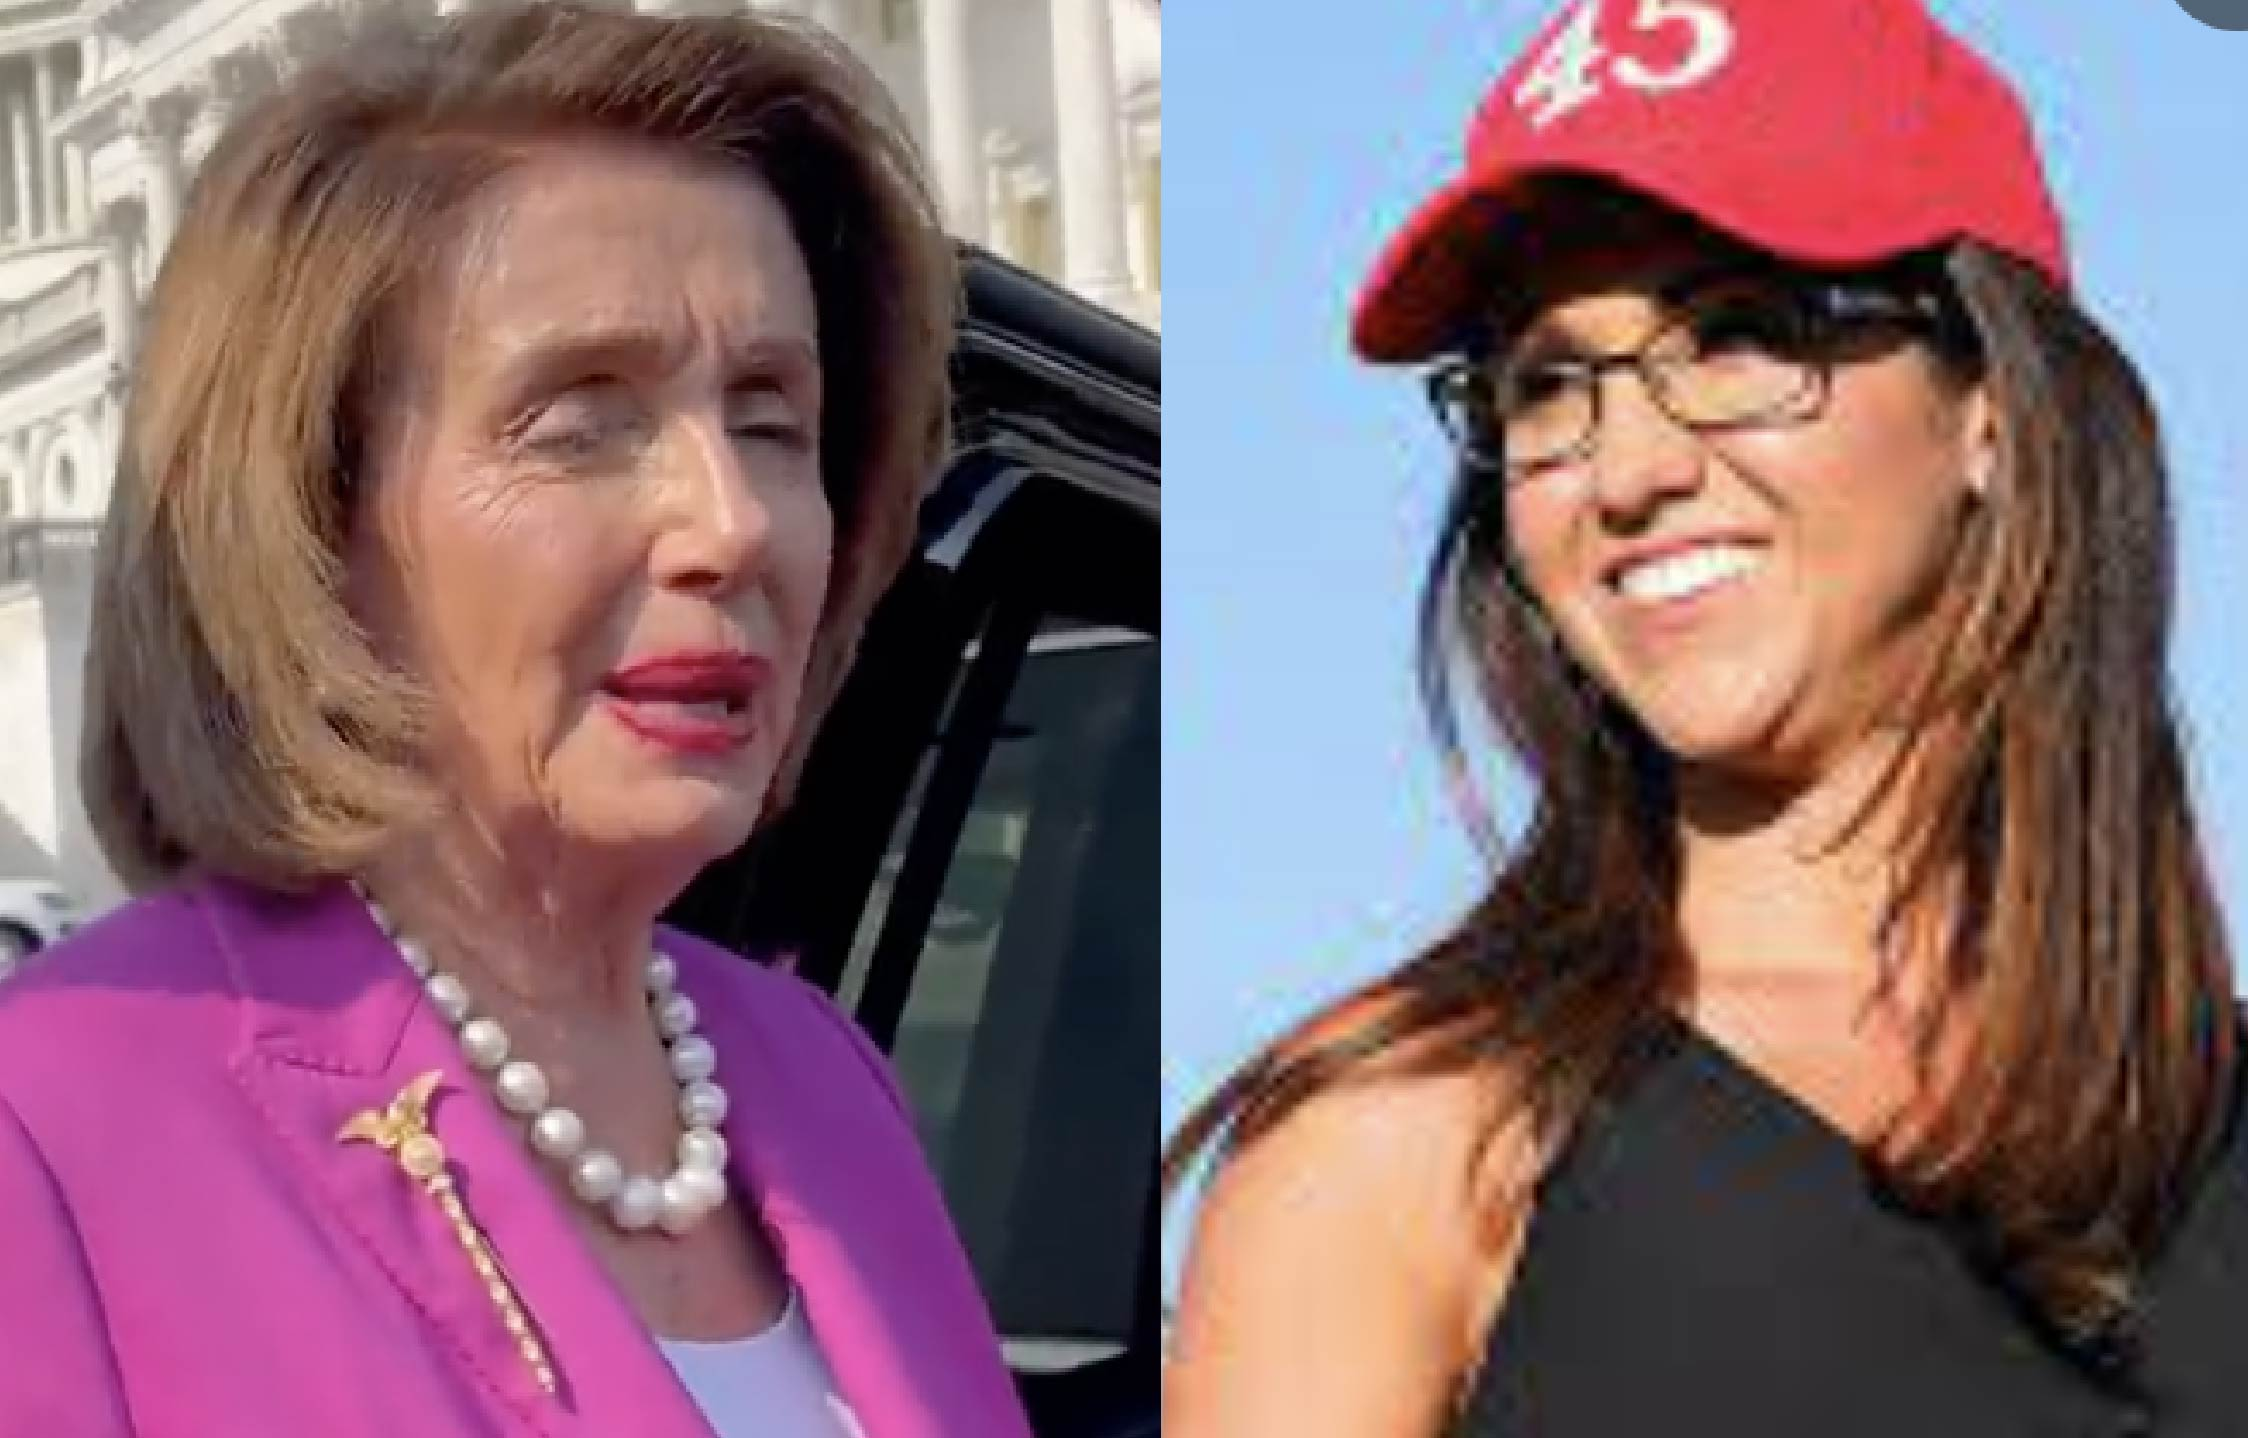 [VIDEO] Rep Boebert Takes a Dig at Pelosi and The Floodgates Opened